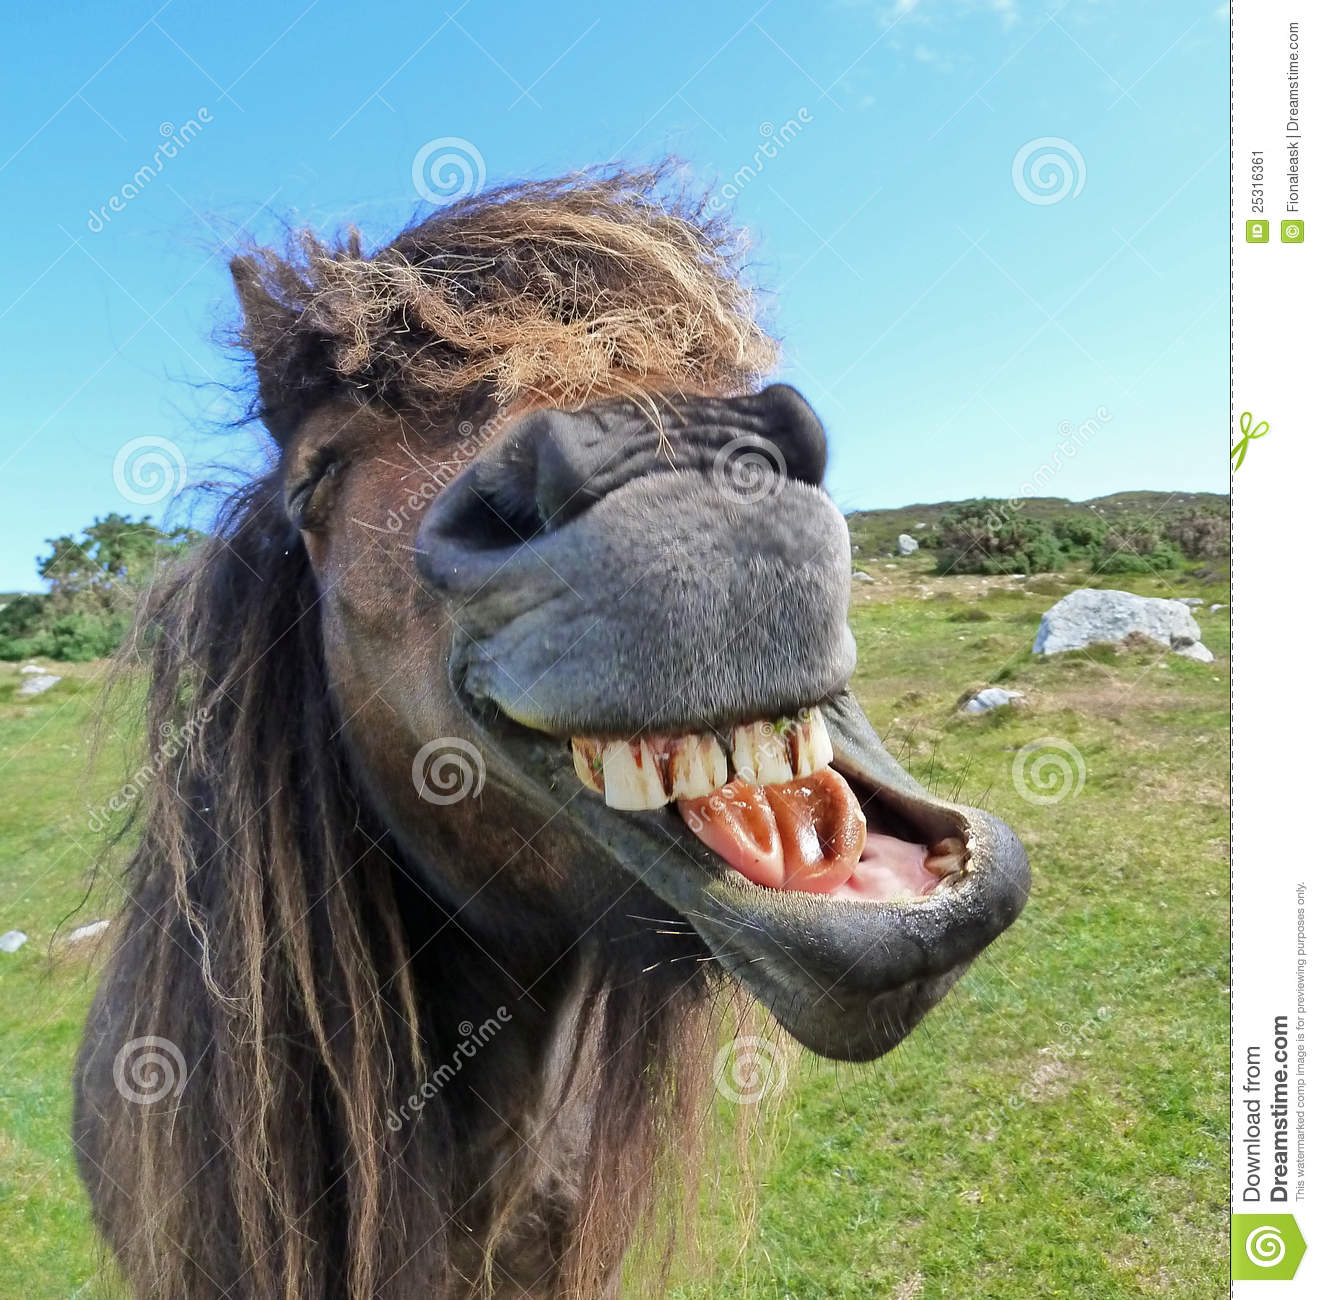 Animated Happy Birthday Wallpaper Free Download Laughing Horse Stock Image Image 25316361